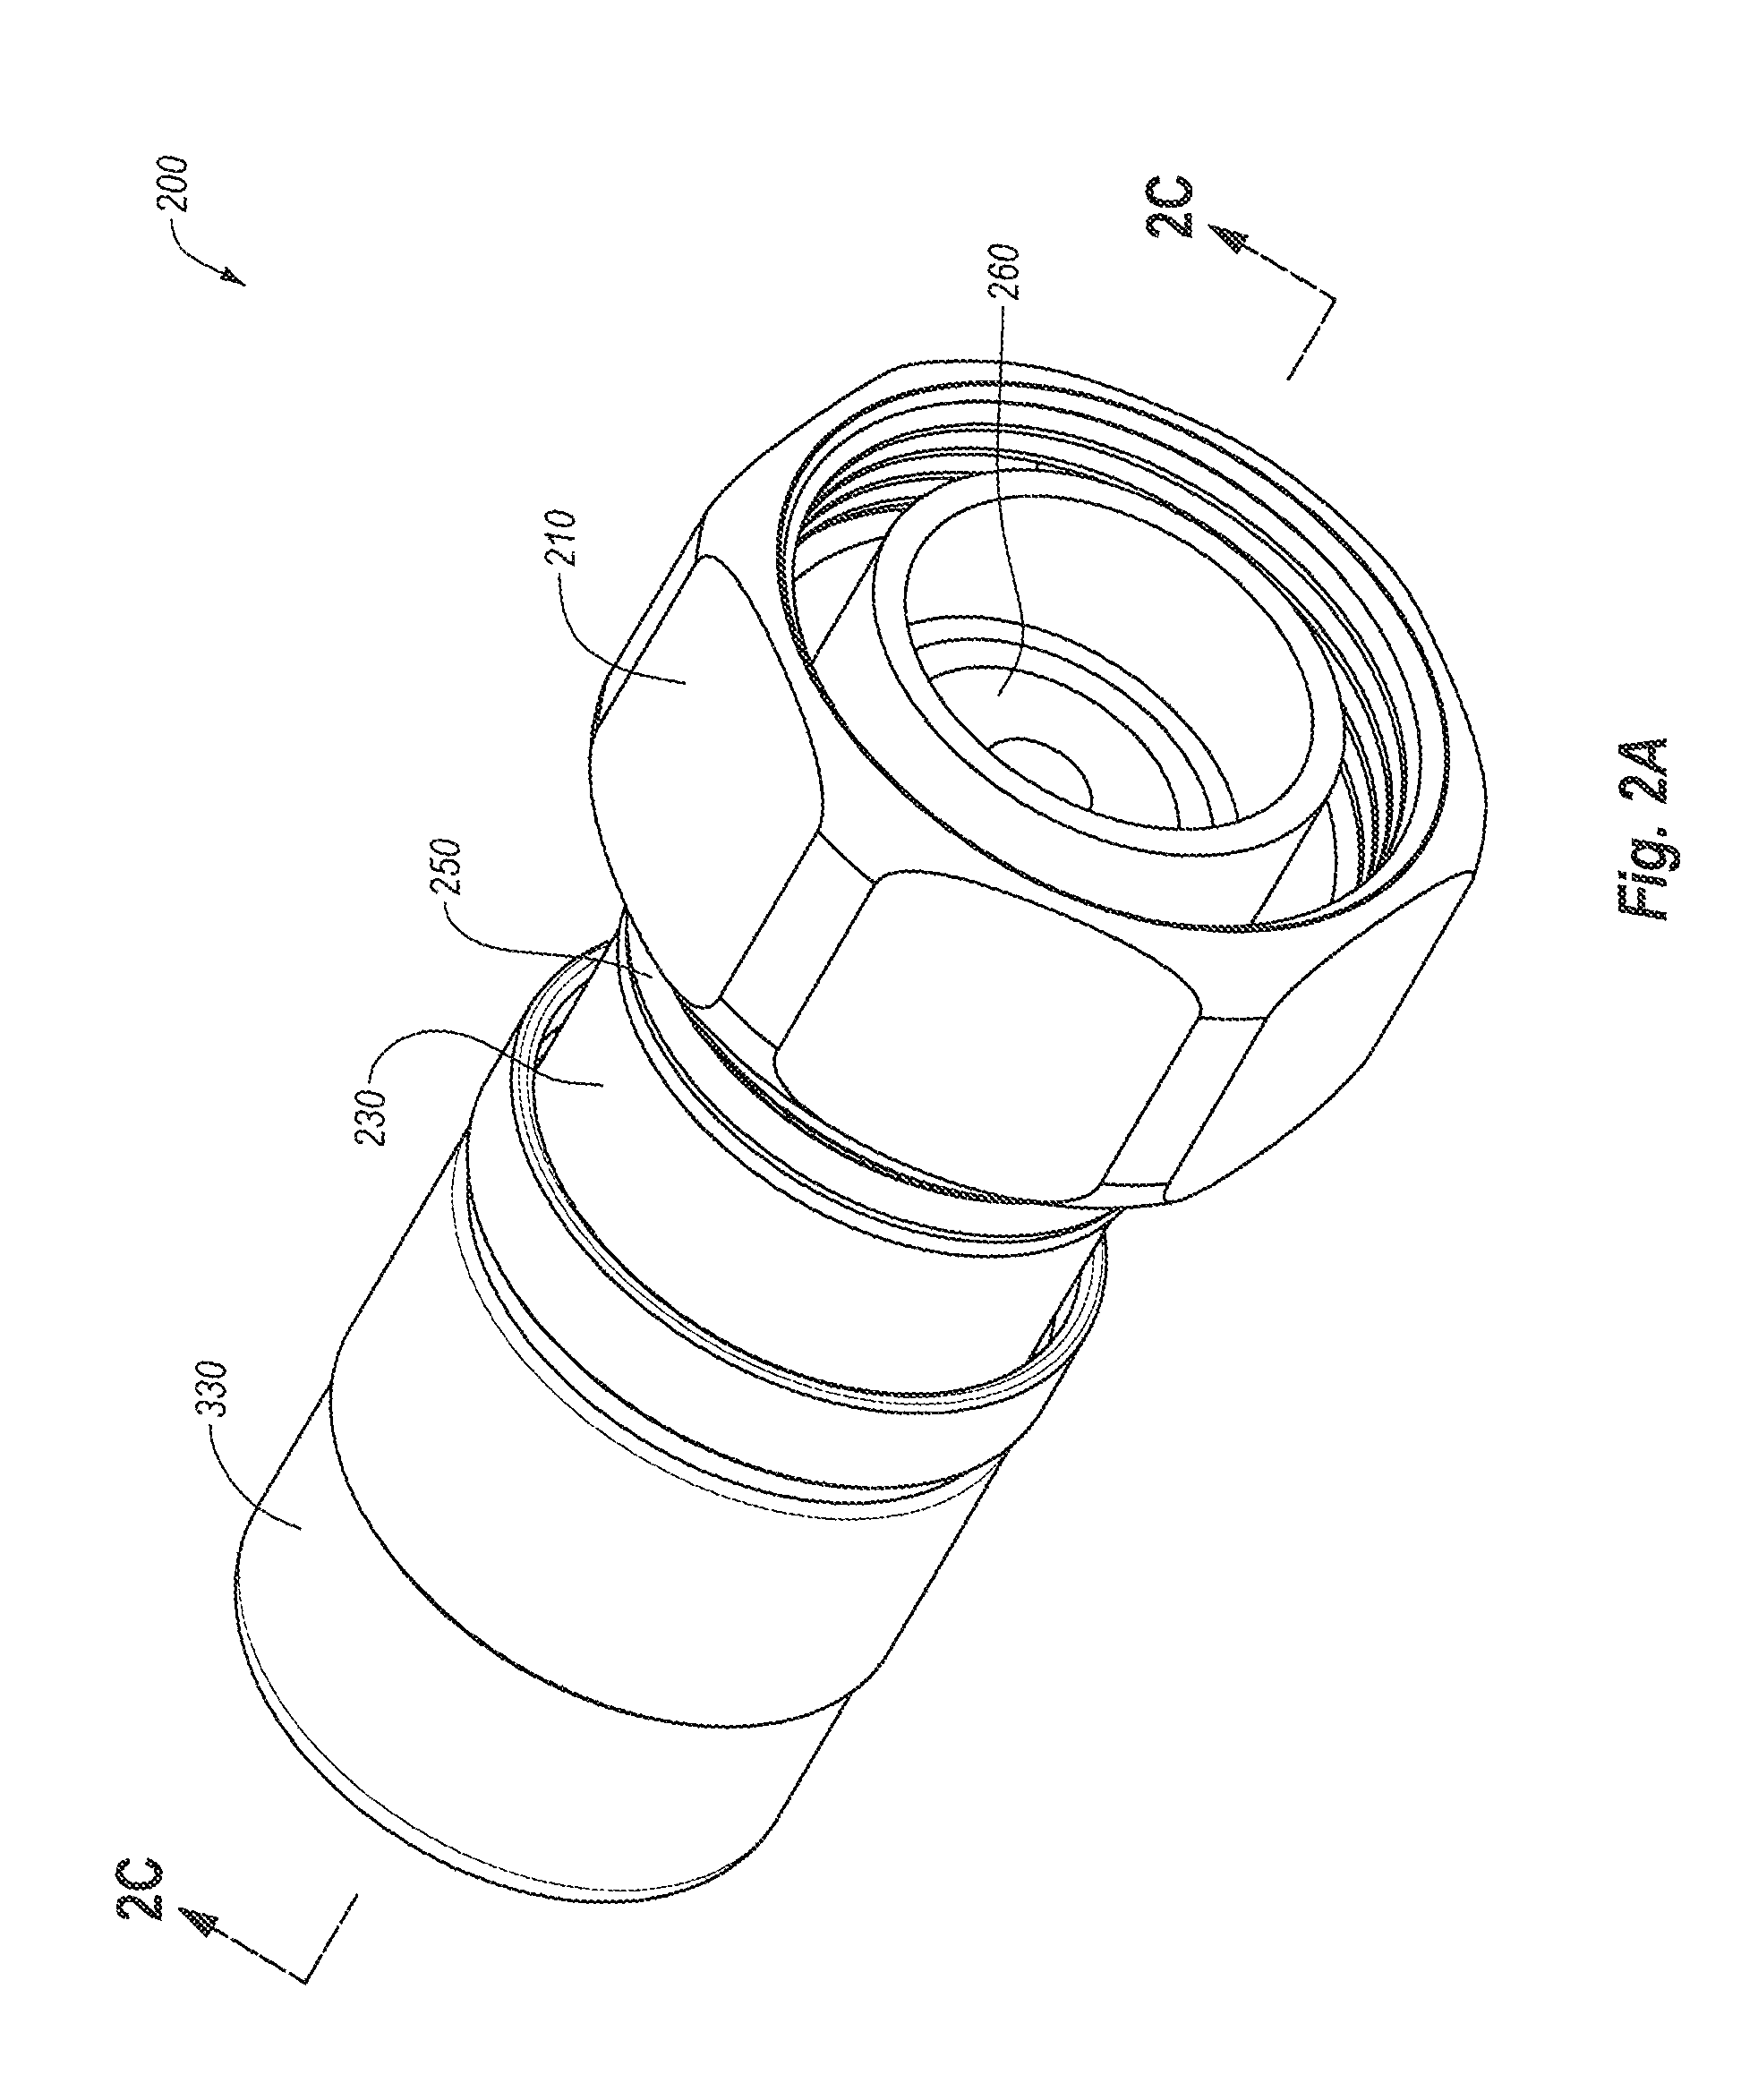 related with wire rope diameter definition